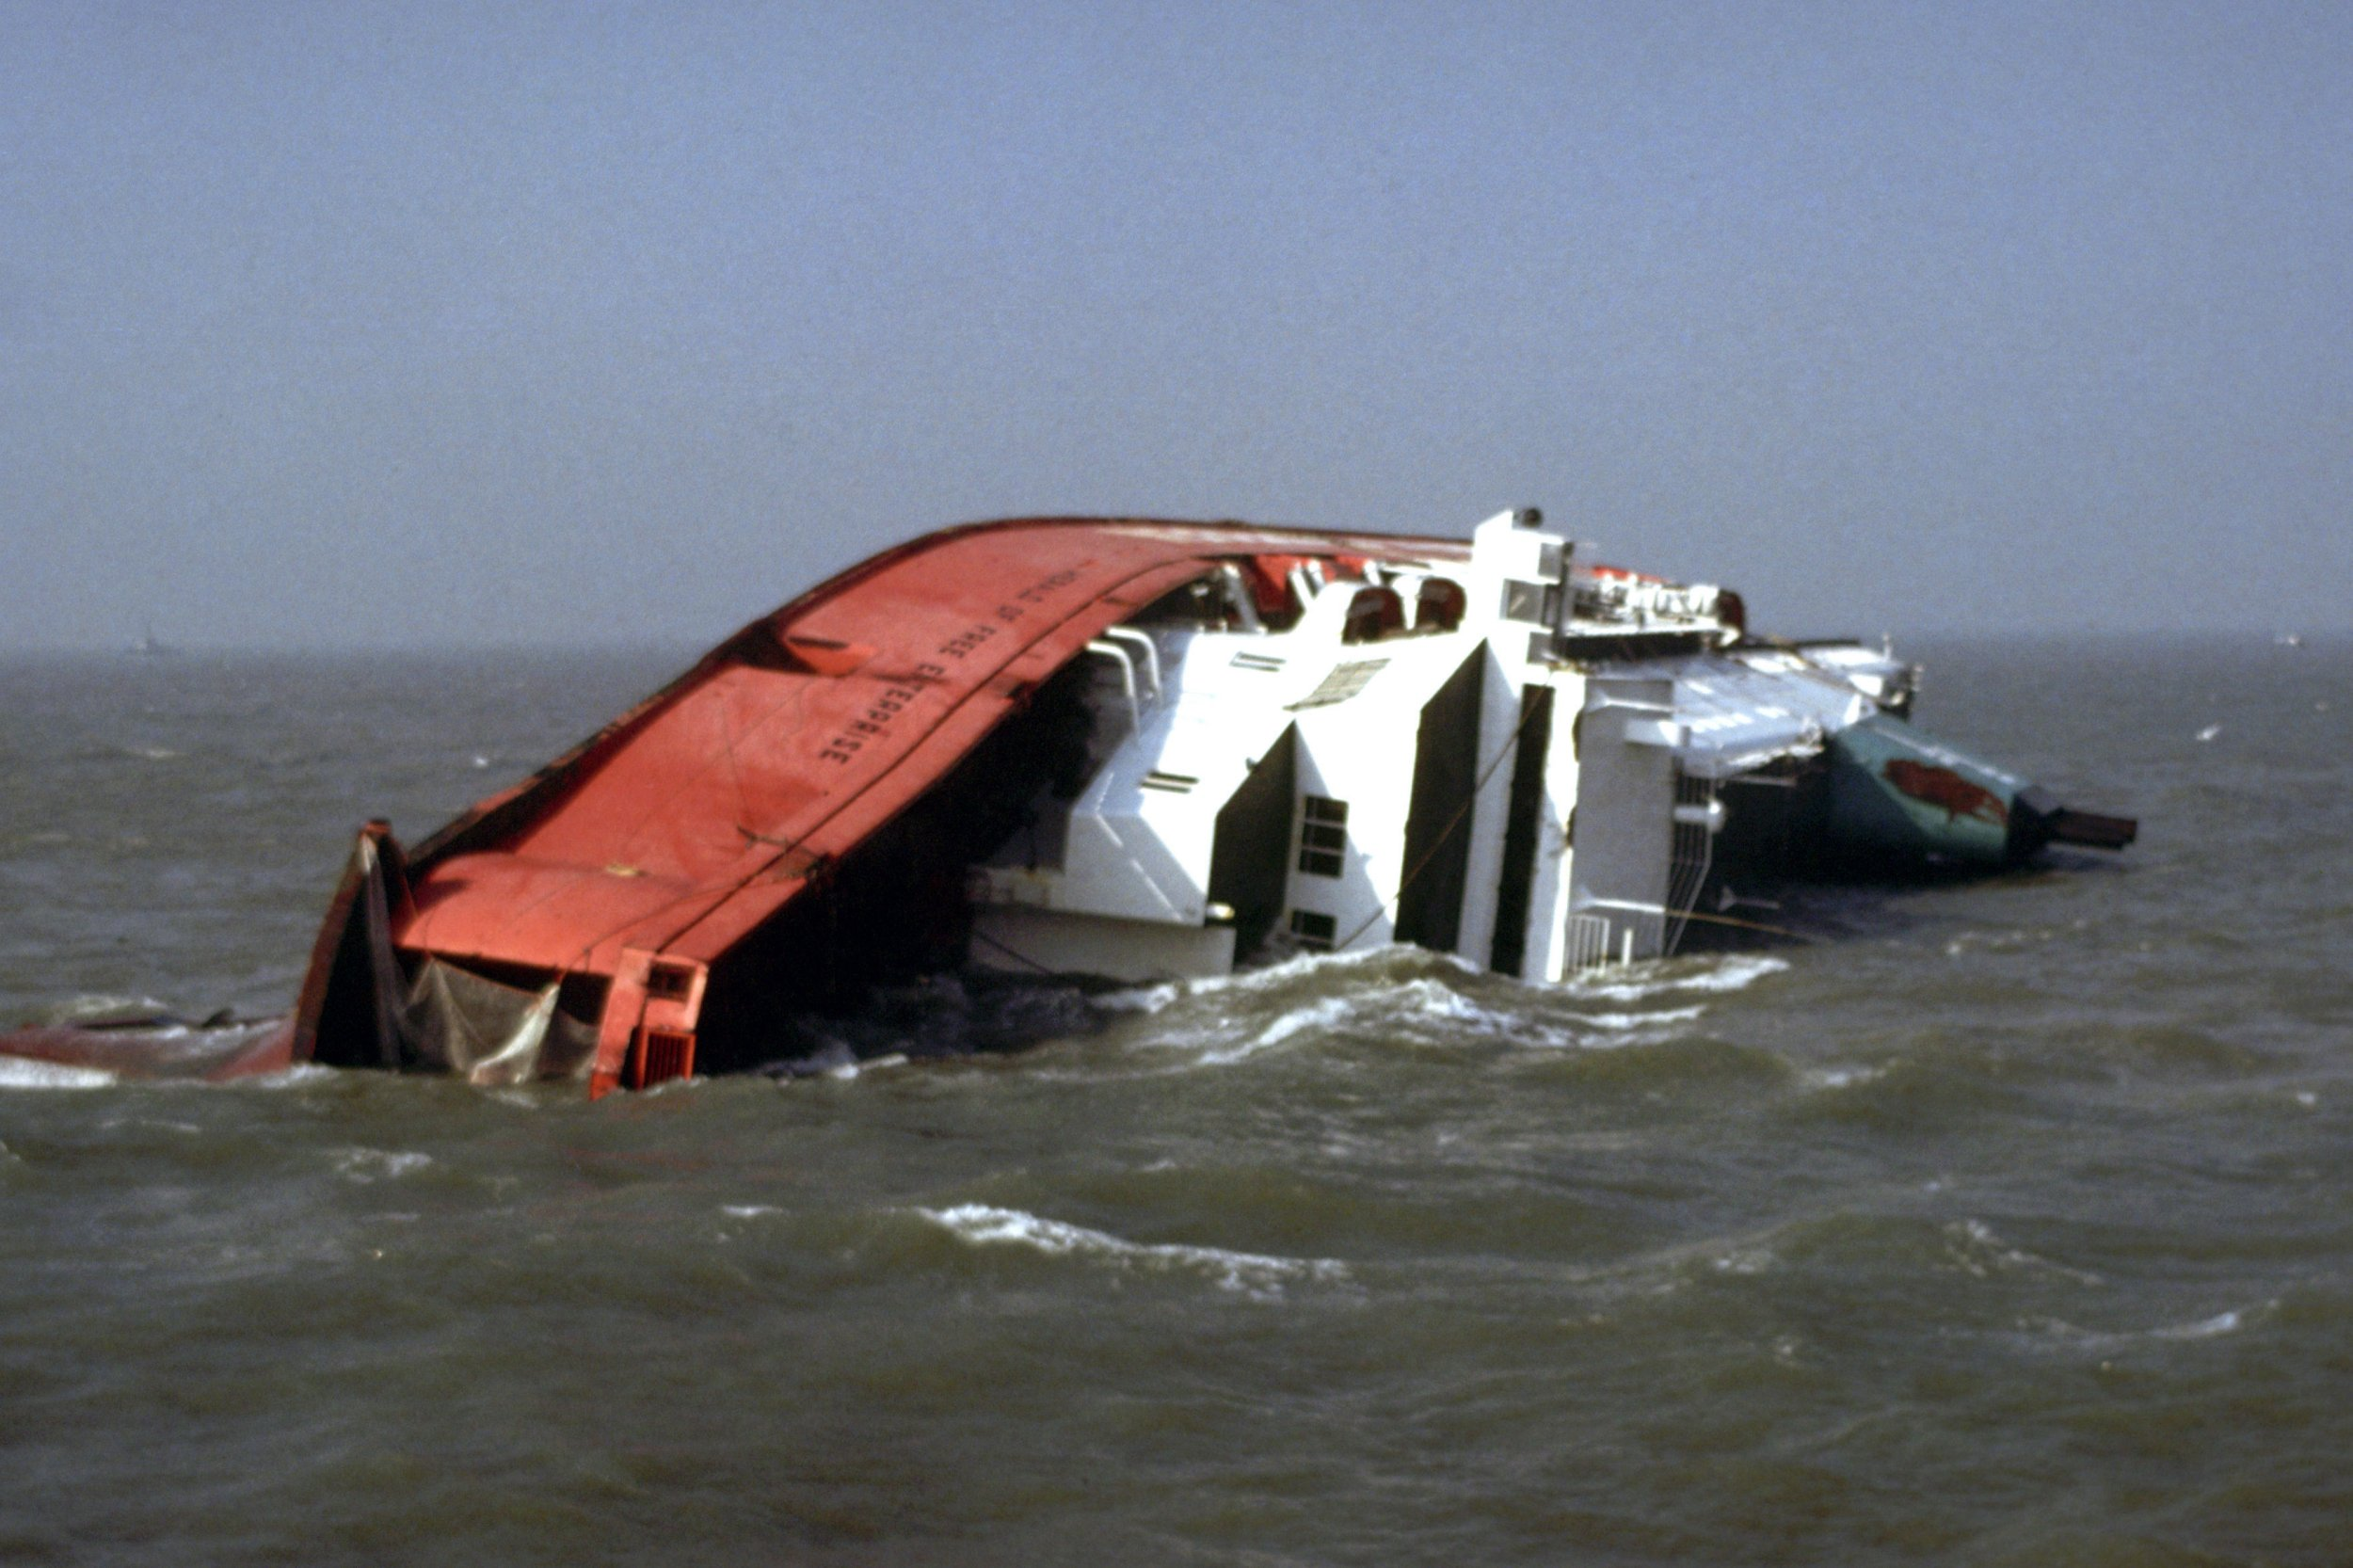 File photo dated 07/03/87 of the Townsend Thorensen car ferry Herald of Free Enterprise, which capsized near the entrance to Zeebrugge Harbour, Belgium, on its way to Dover. 193 people lost their lives in the disaster. PRESS ASSOCIATION Photo. Issue date: Sunday March 5, 2017. See PA story MEMORIAL Zeebrugge. Photo credit should read: PA/PA Wire